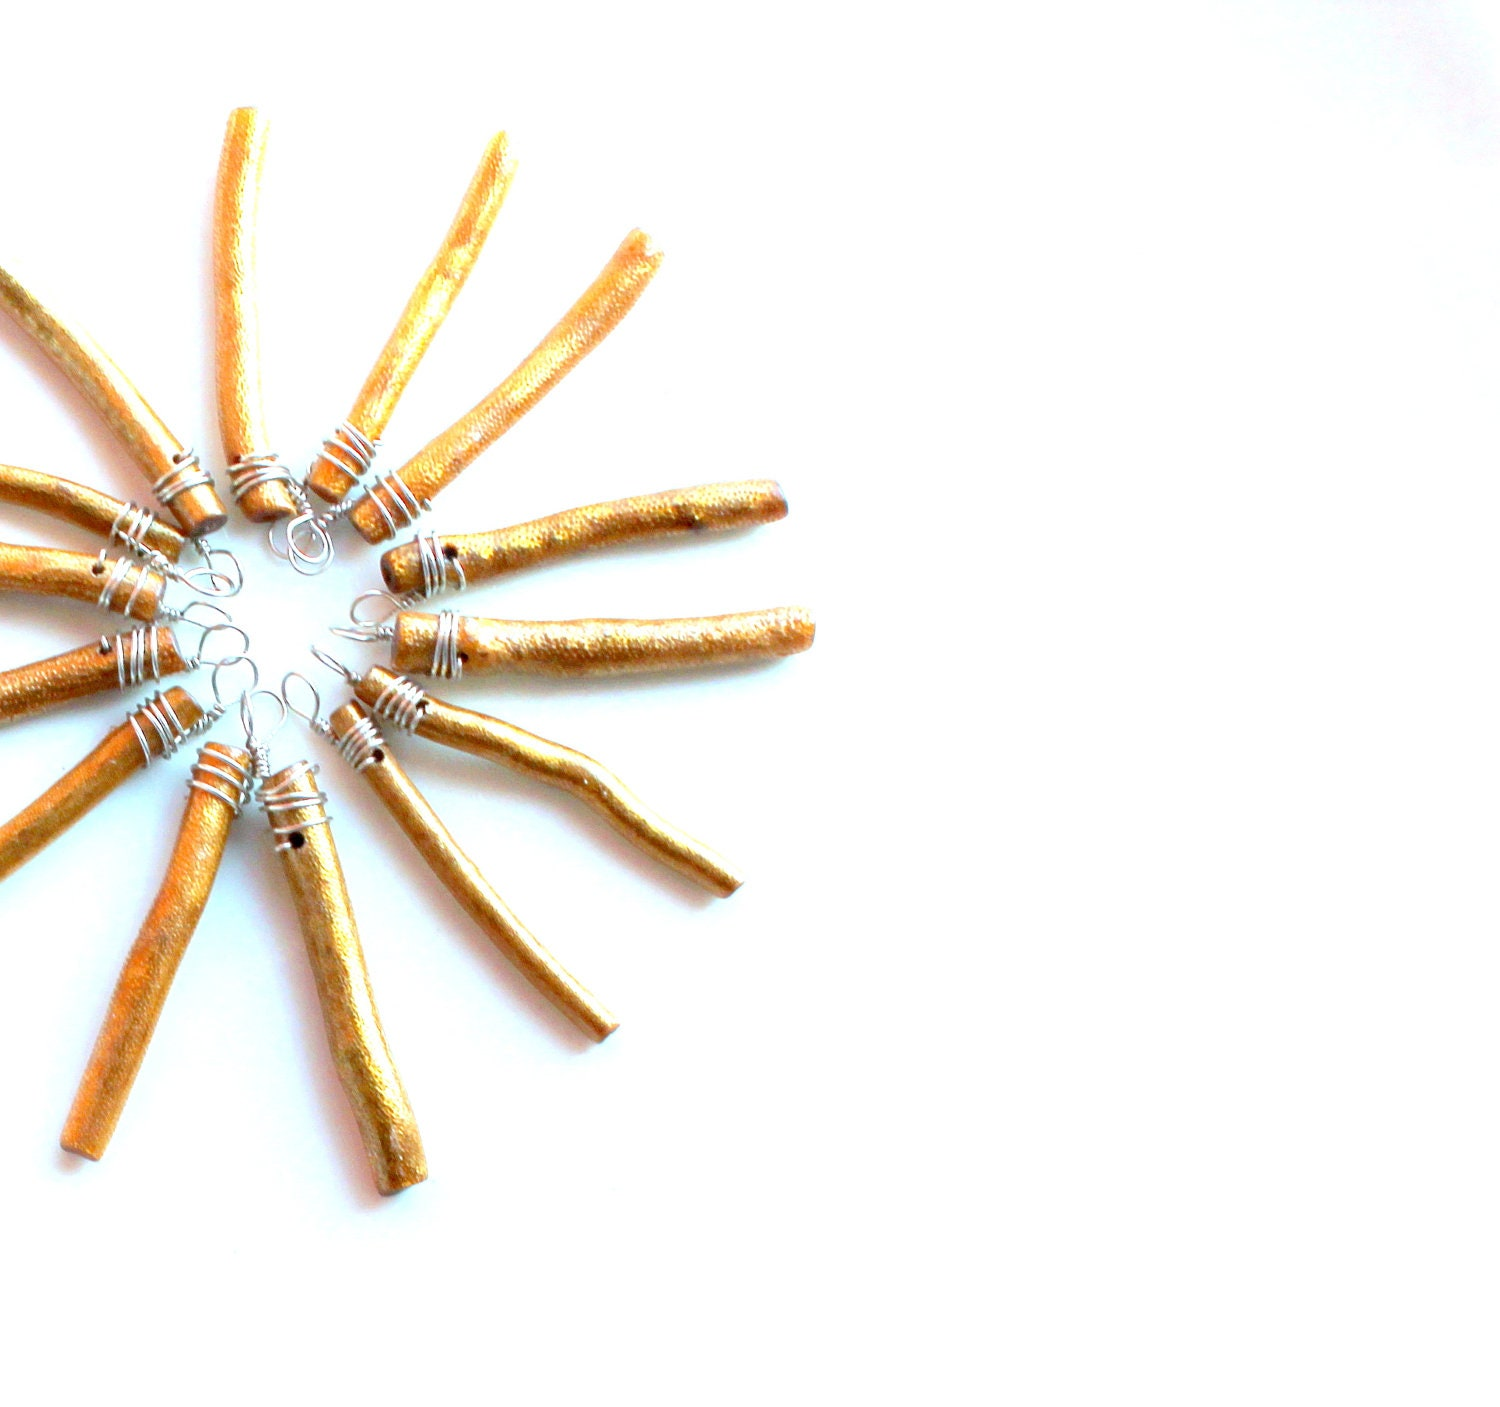 Gold Coral sticks 10 for 10. wire wrapped sea coral crafting supplies sticks pendants charms. gold ornament sticks - UniqueNecks